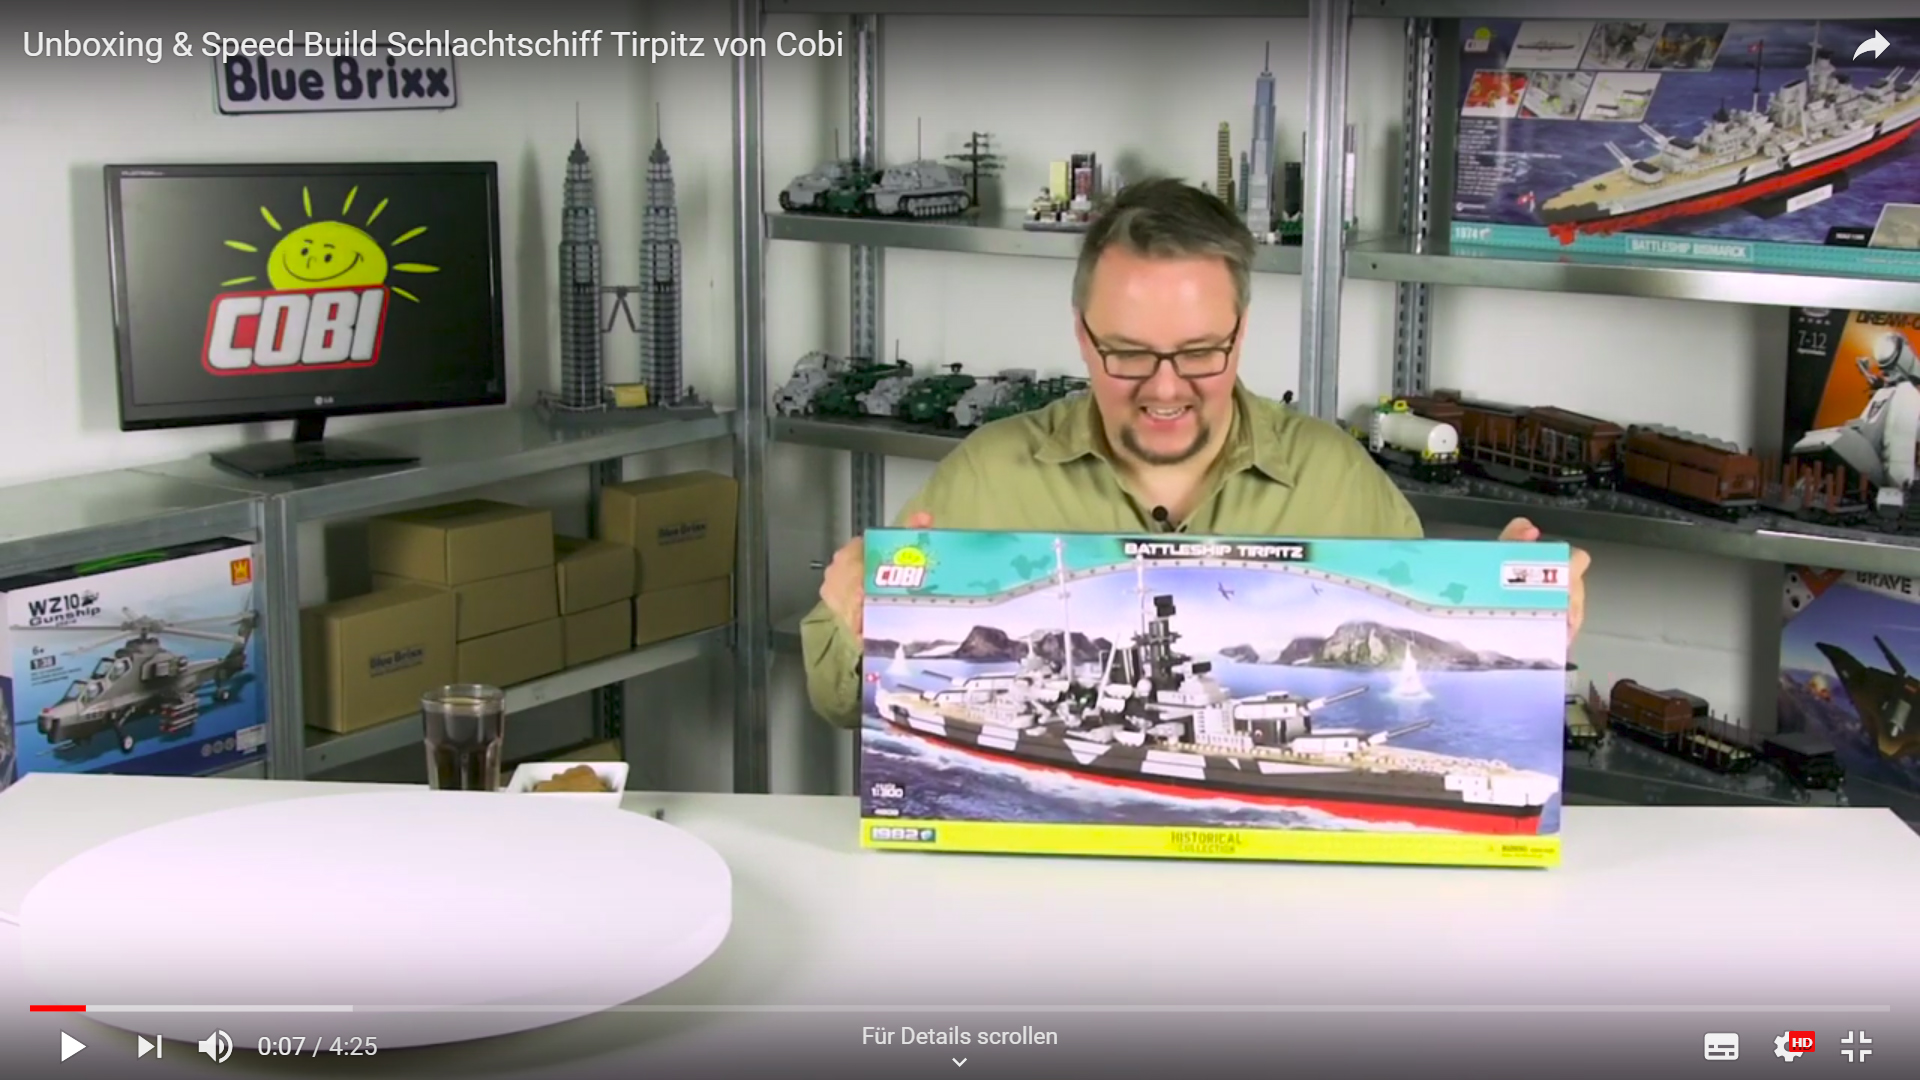 speed build tirpitz